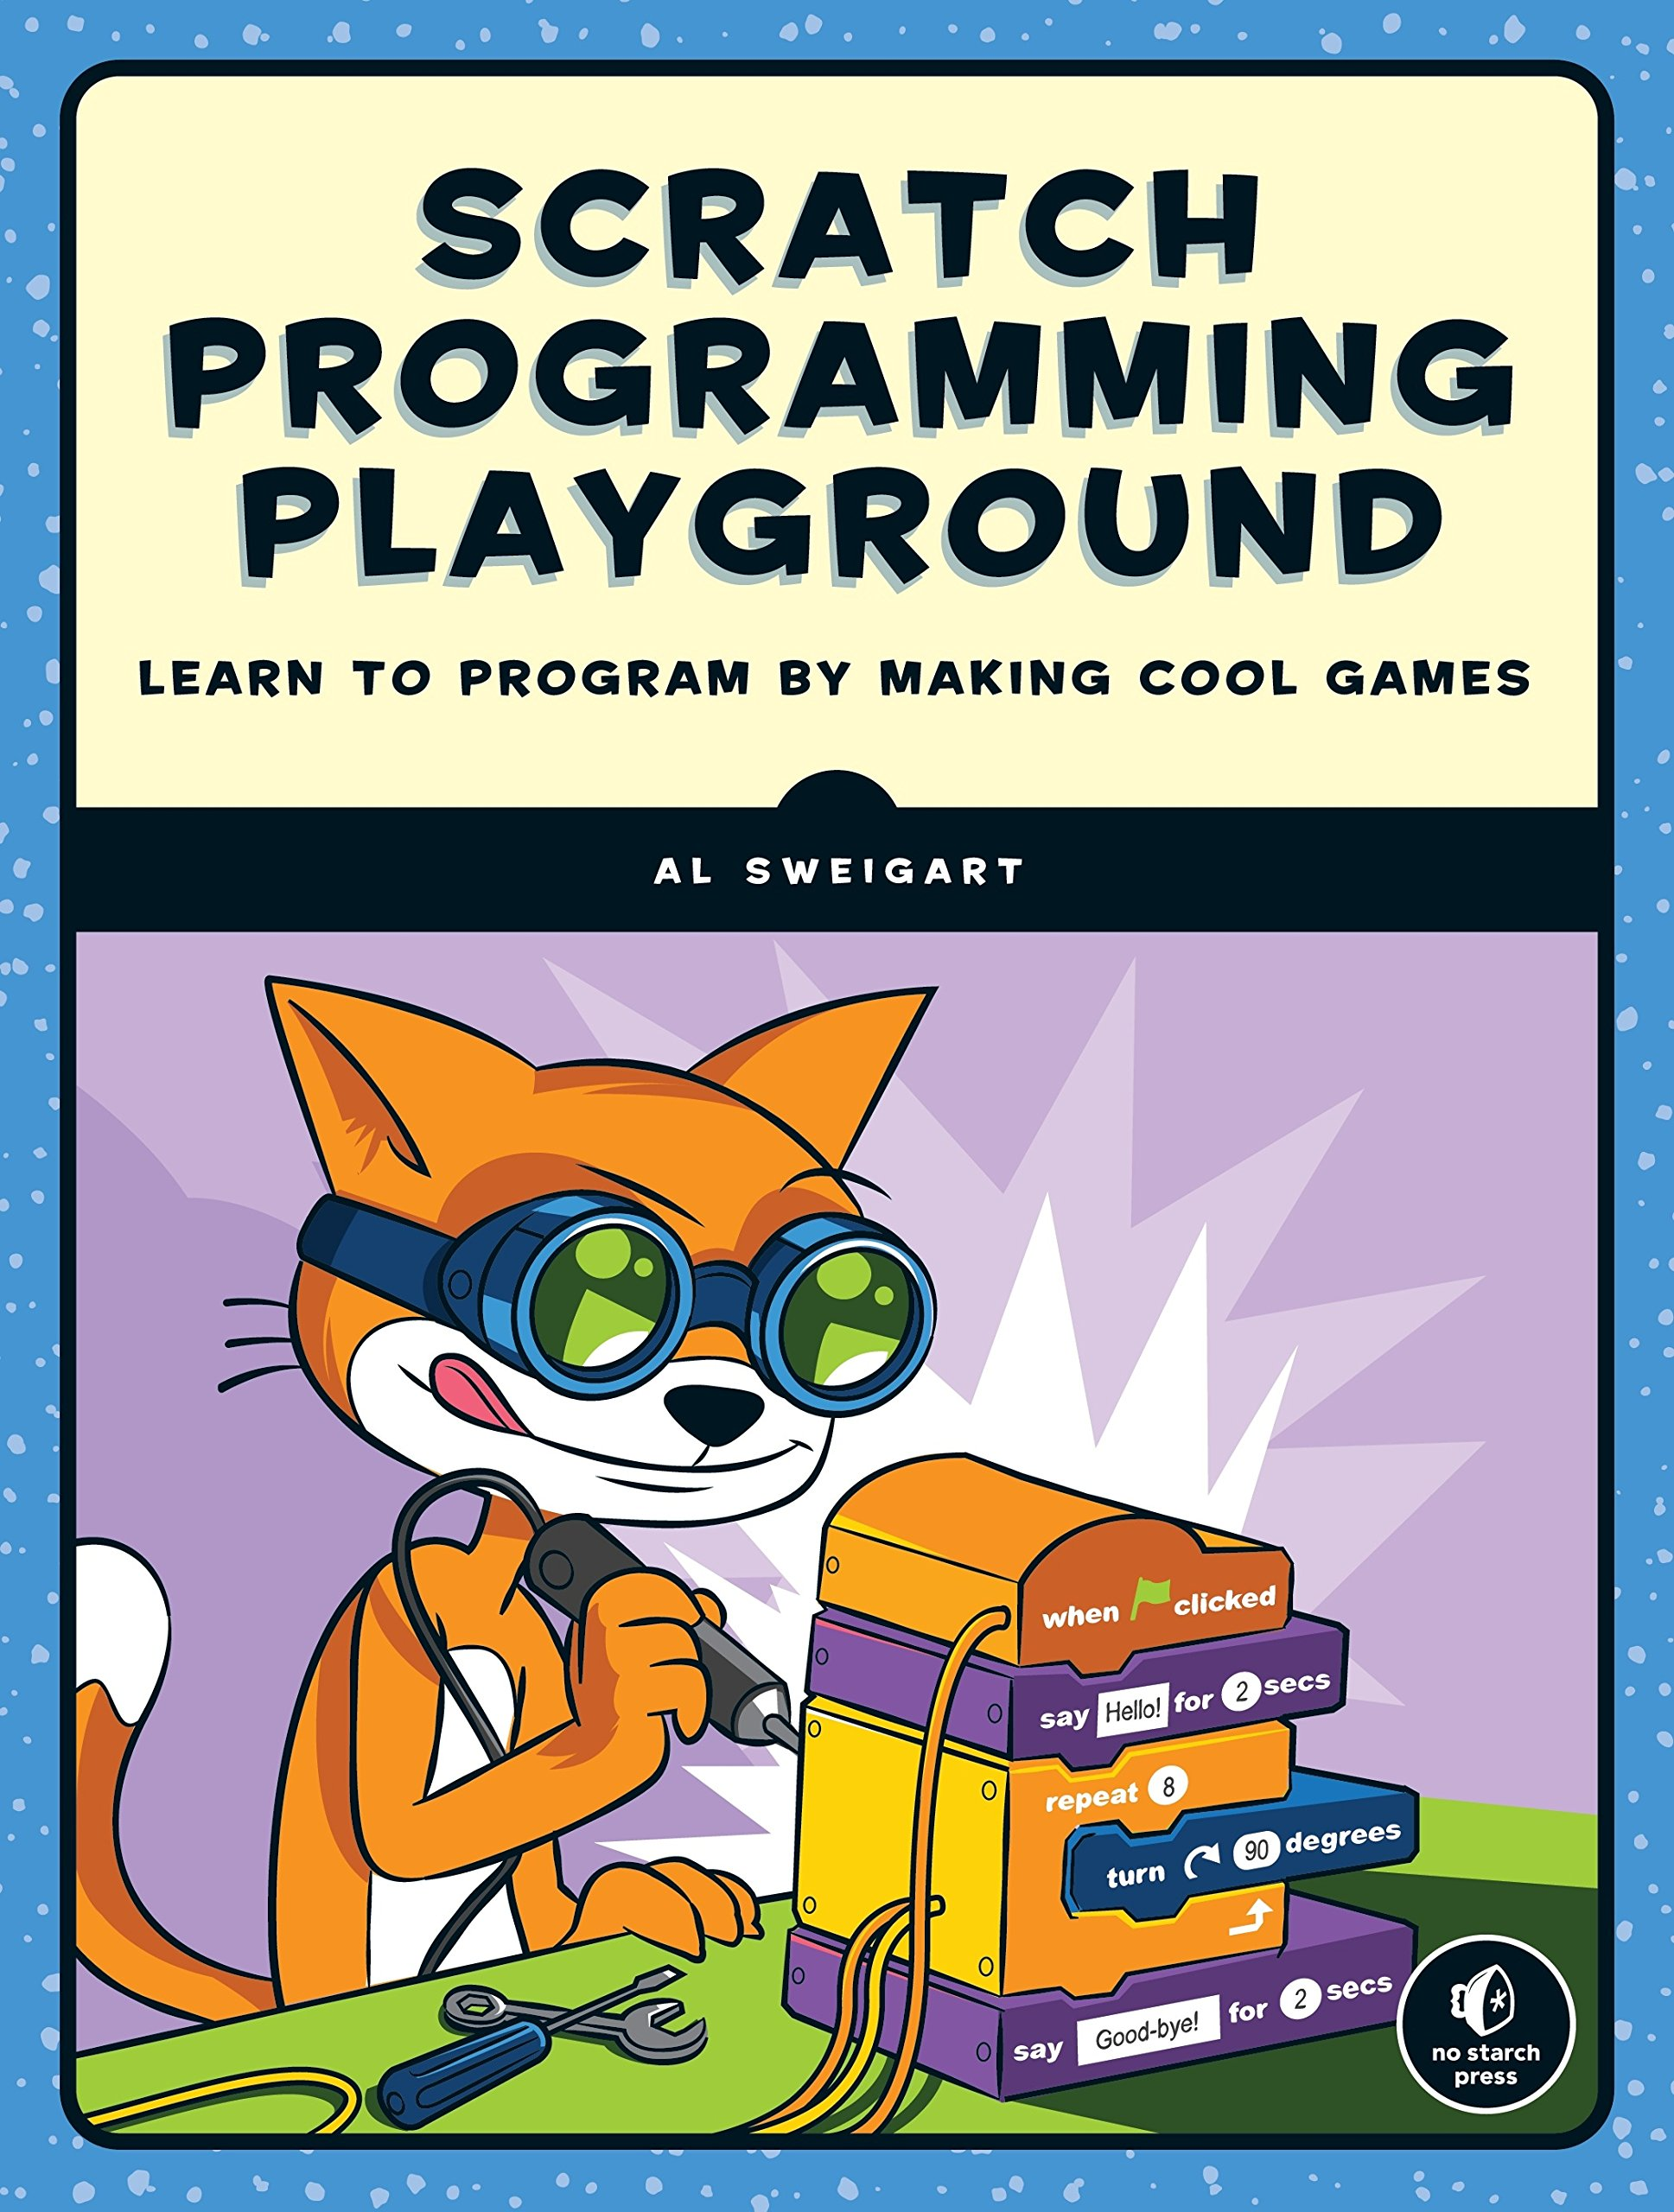 Scratch Programming Playground: Learn to Program by Making Cool Games by Penguin Books (Image #2)